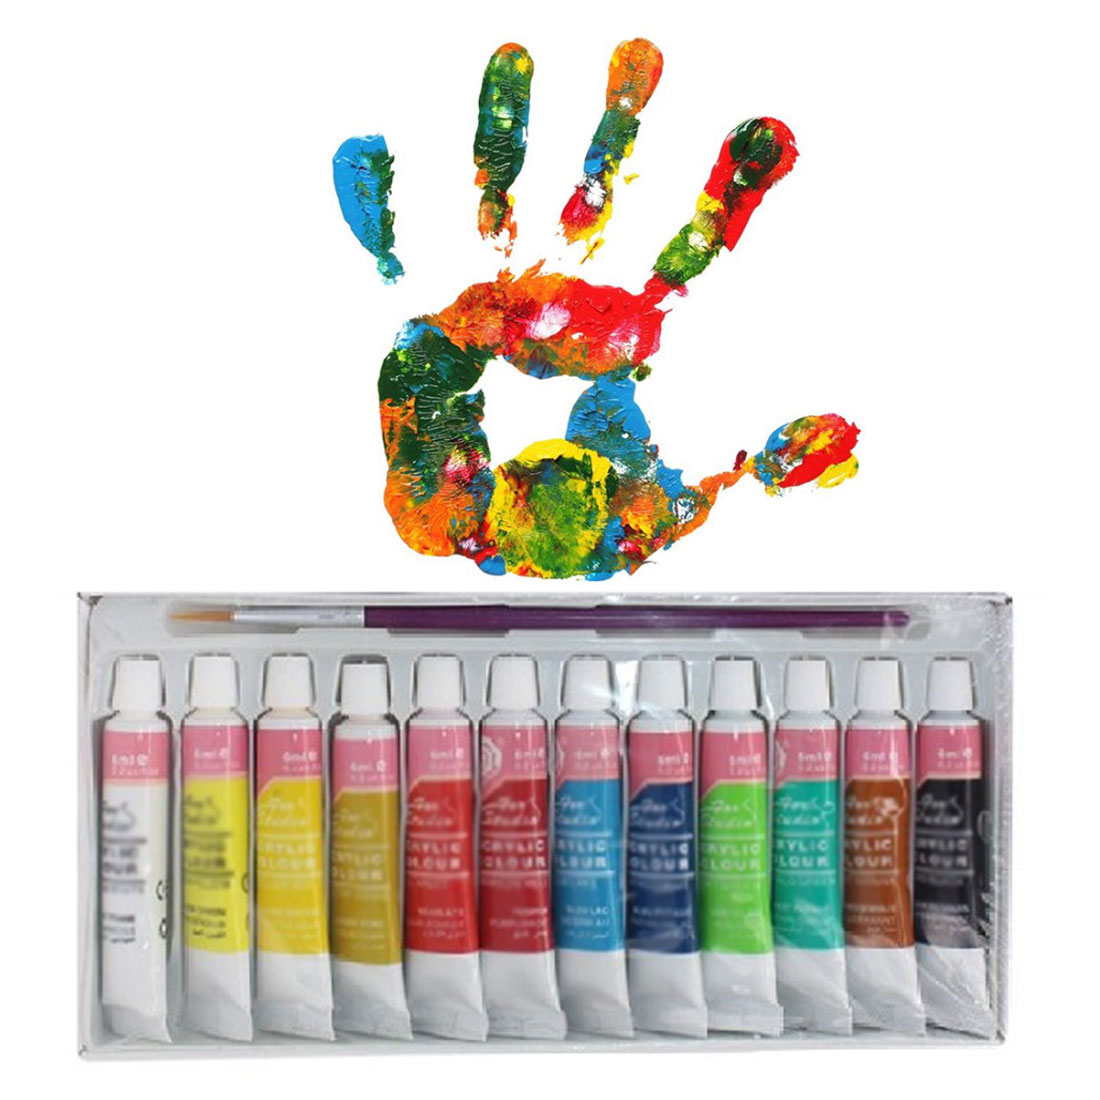 Professional Acrylic Paints For Hand-draw Clothing 12 Colors 6ML Acrylic Pigment Hand Painted For Textile Wall Stone Nail Wood